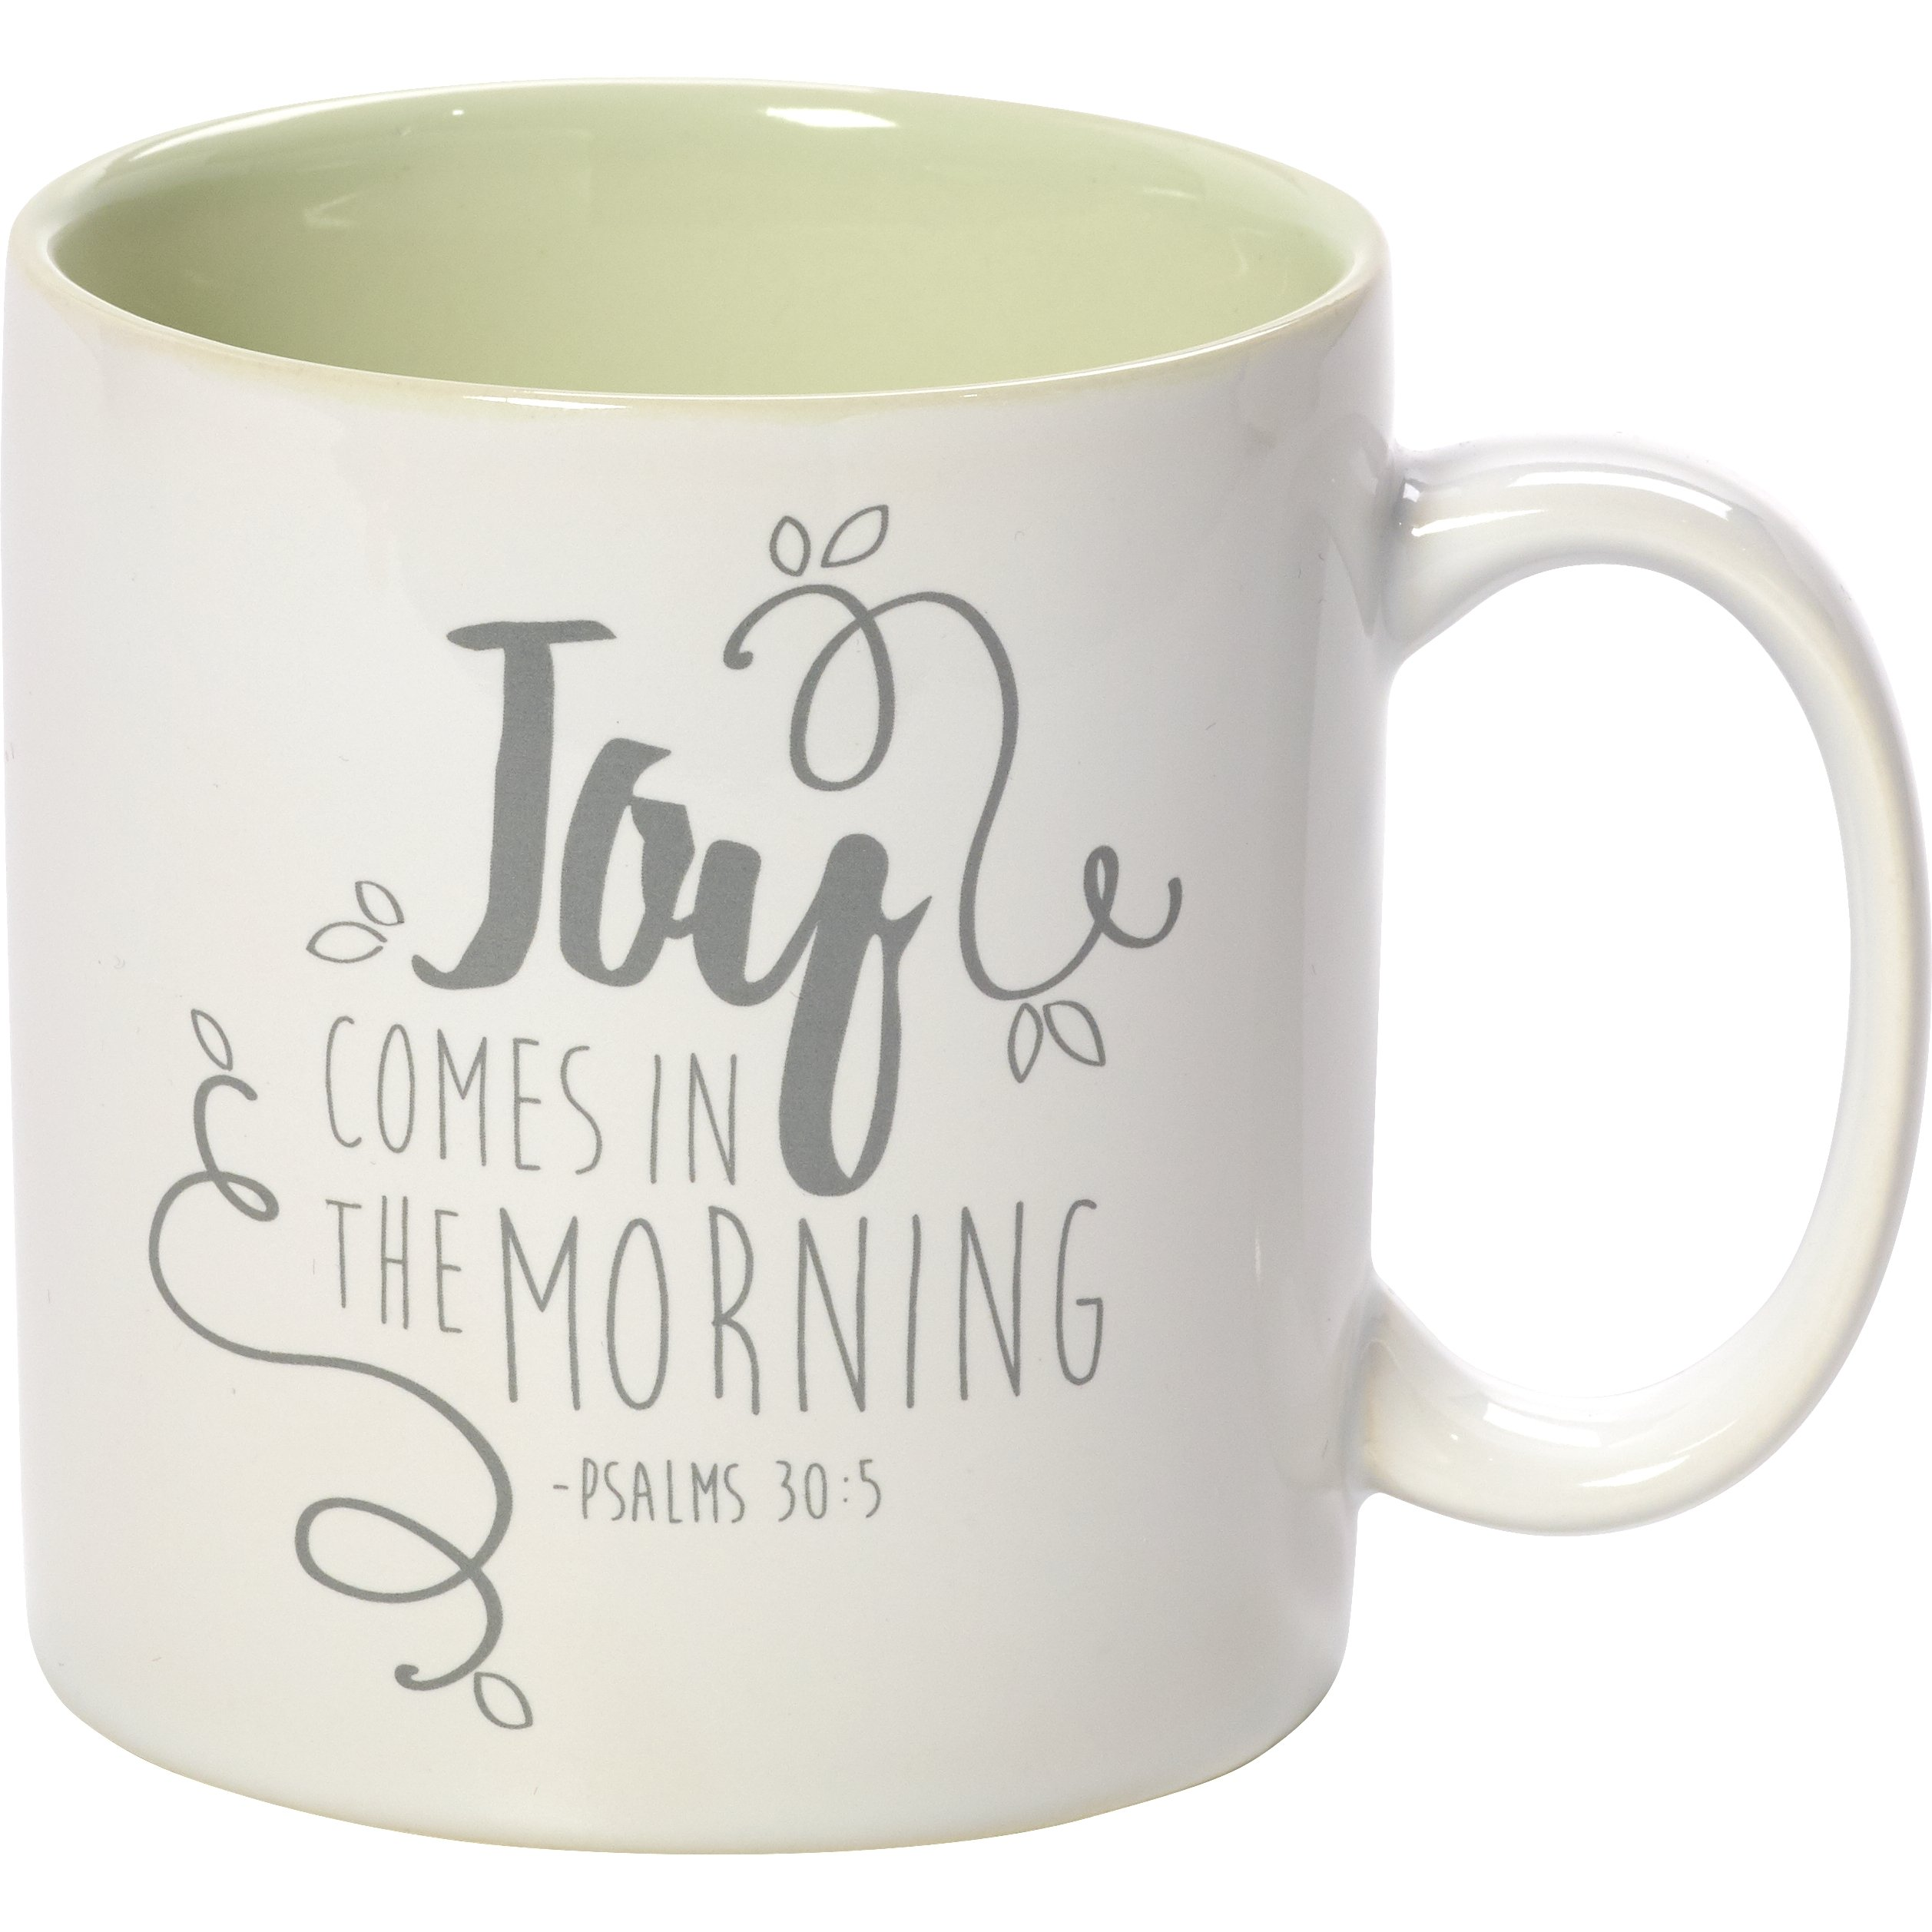 Precious Moments 173414 Green Stoneware 11Oz Coffee Mug Inspirational Home Decor, One Size, Multi